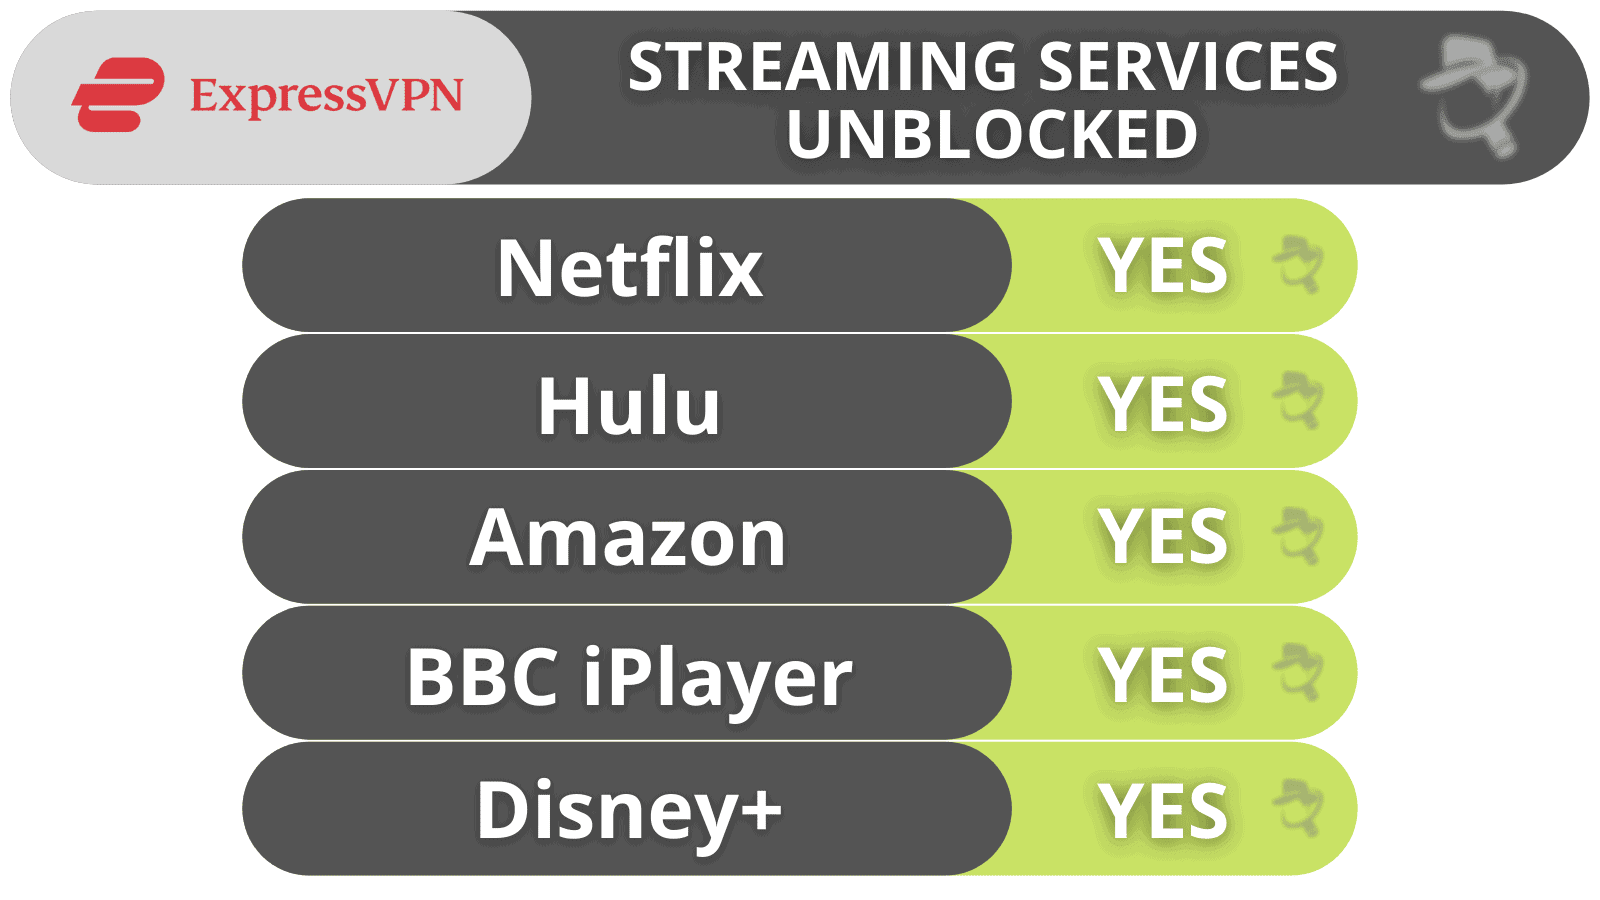 ExpressVPN Streaming & Torrenting